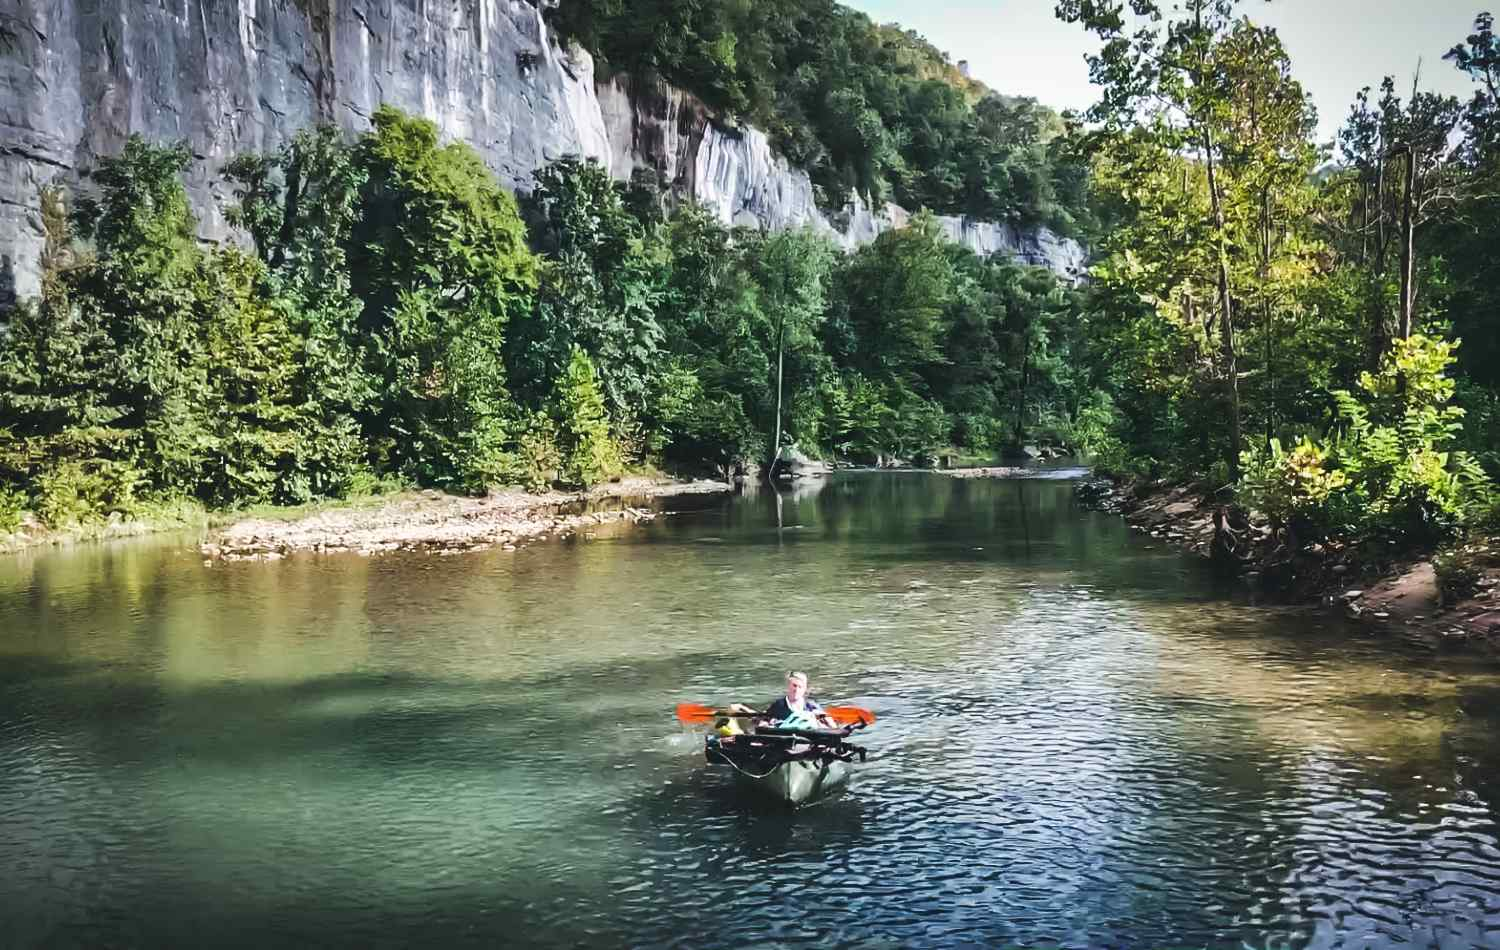 Scotti paddles along the river in her packraft, with her bike strapped onboard